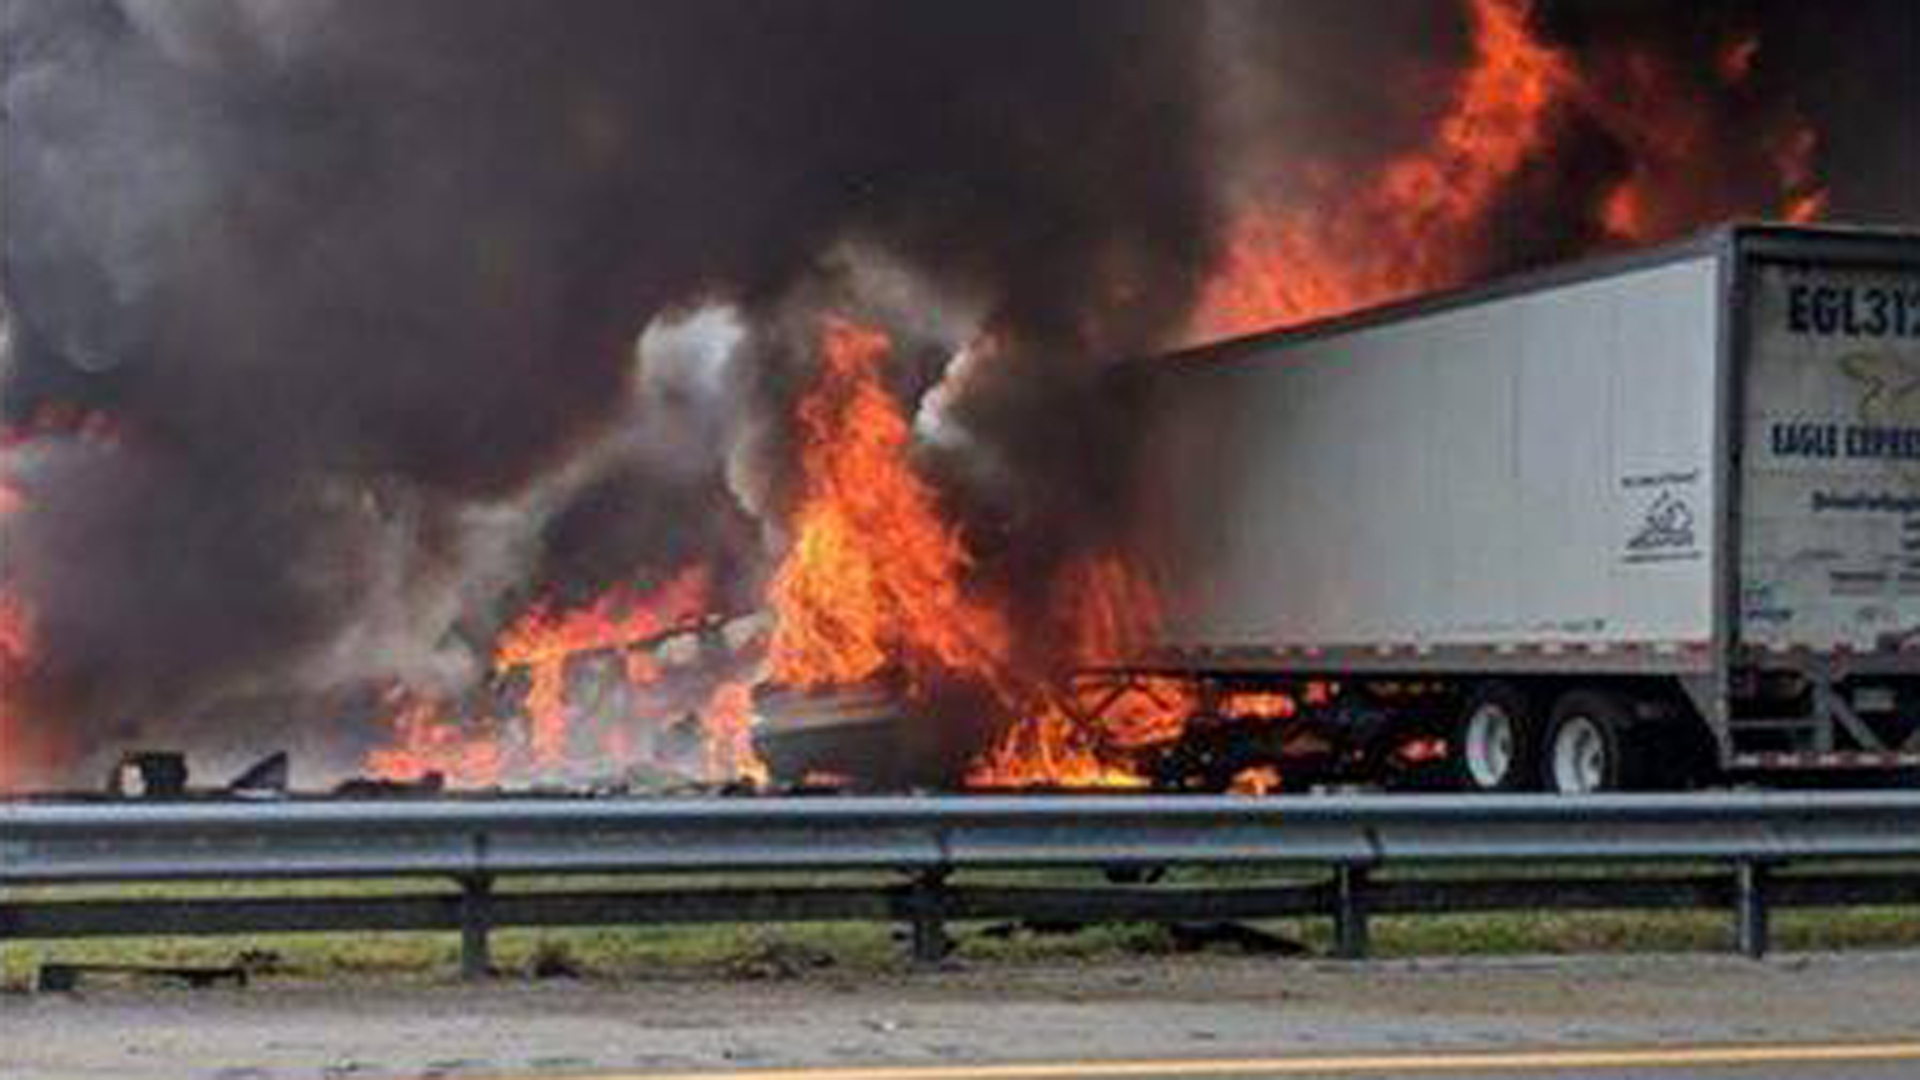 The Alachua County Fire Rescue released this photo of the fiery crash.